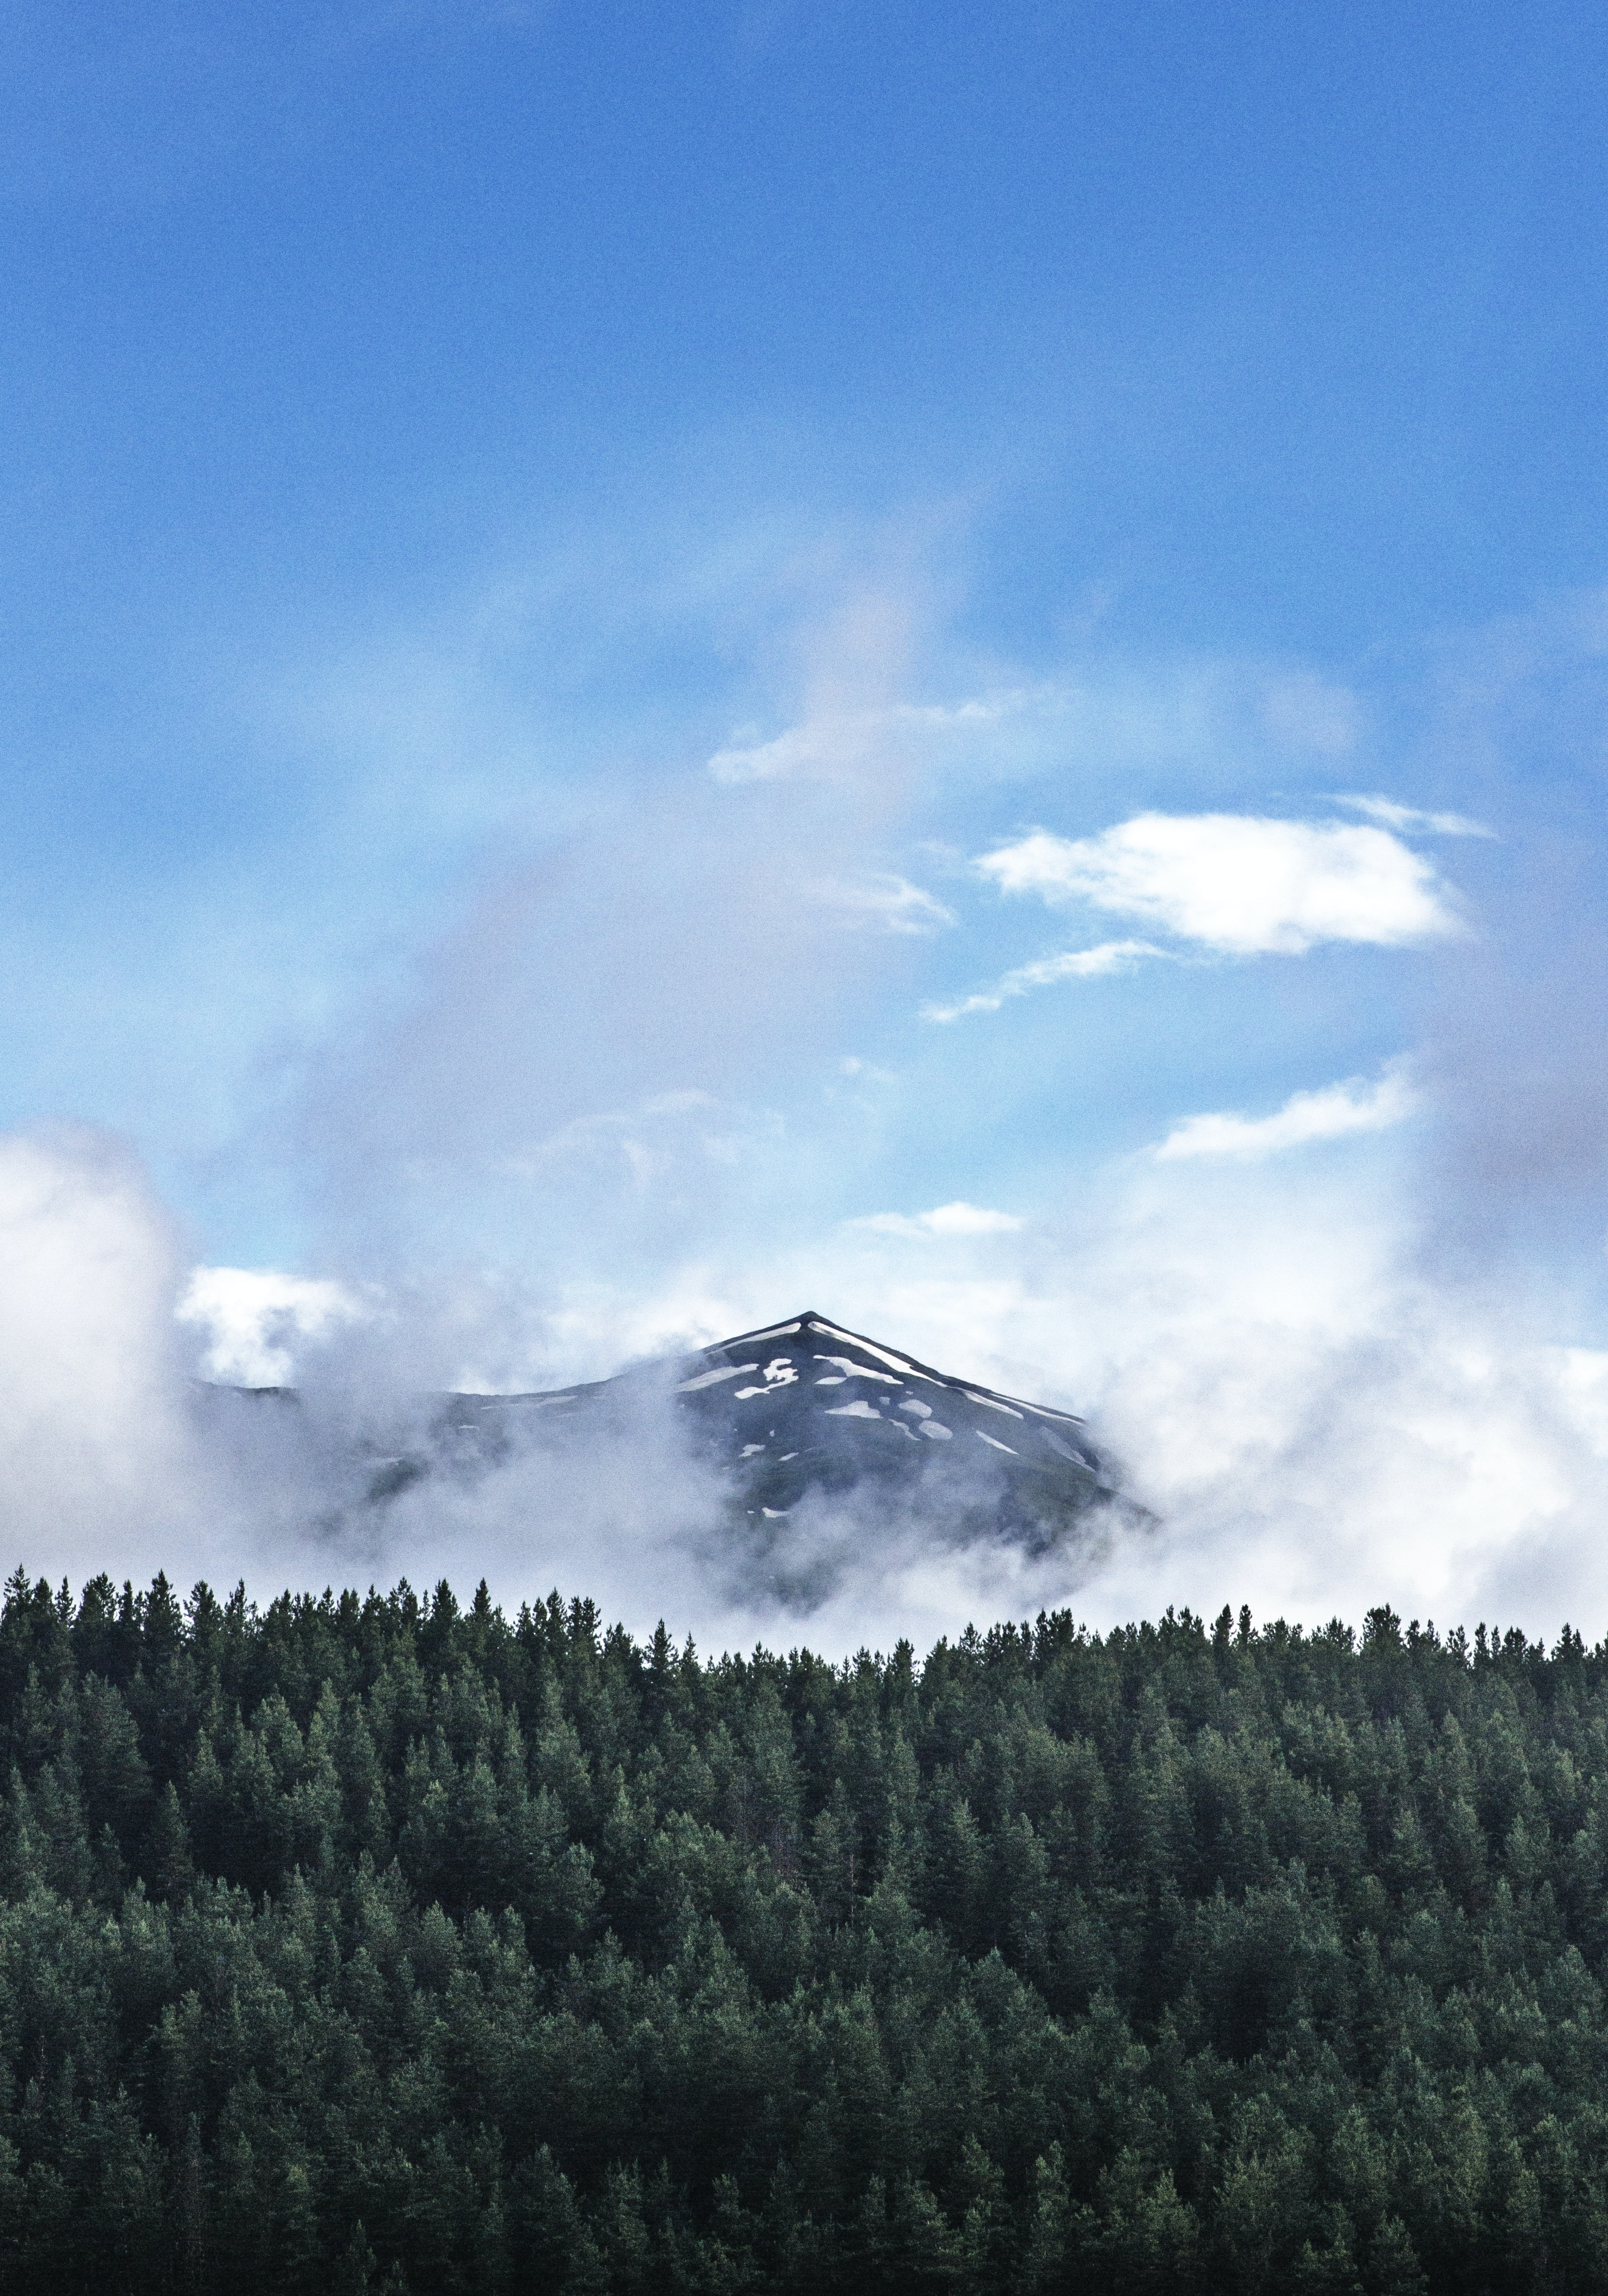 Clouds rising up from a snowy mountain peak over a spruce forest in Tusheti Nature Reserve